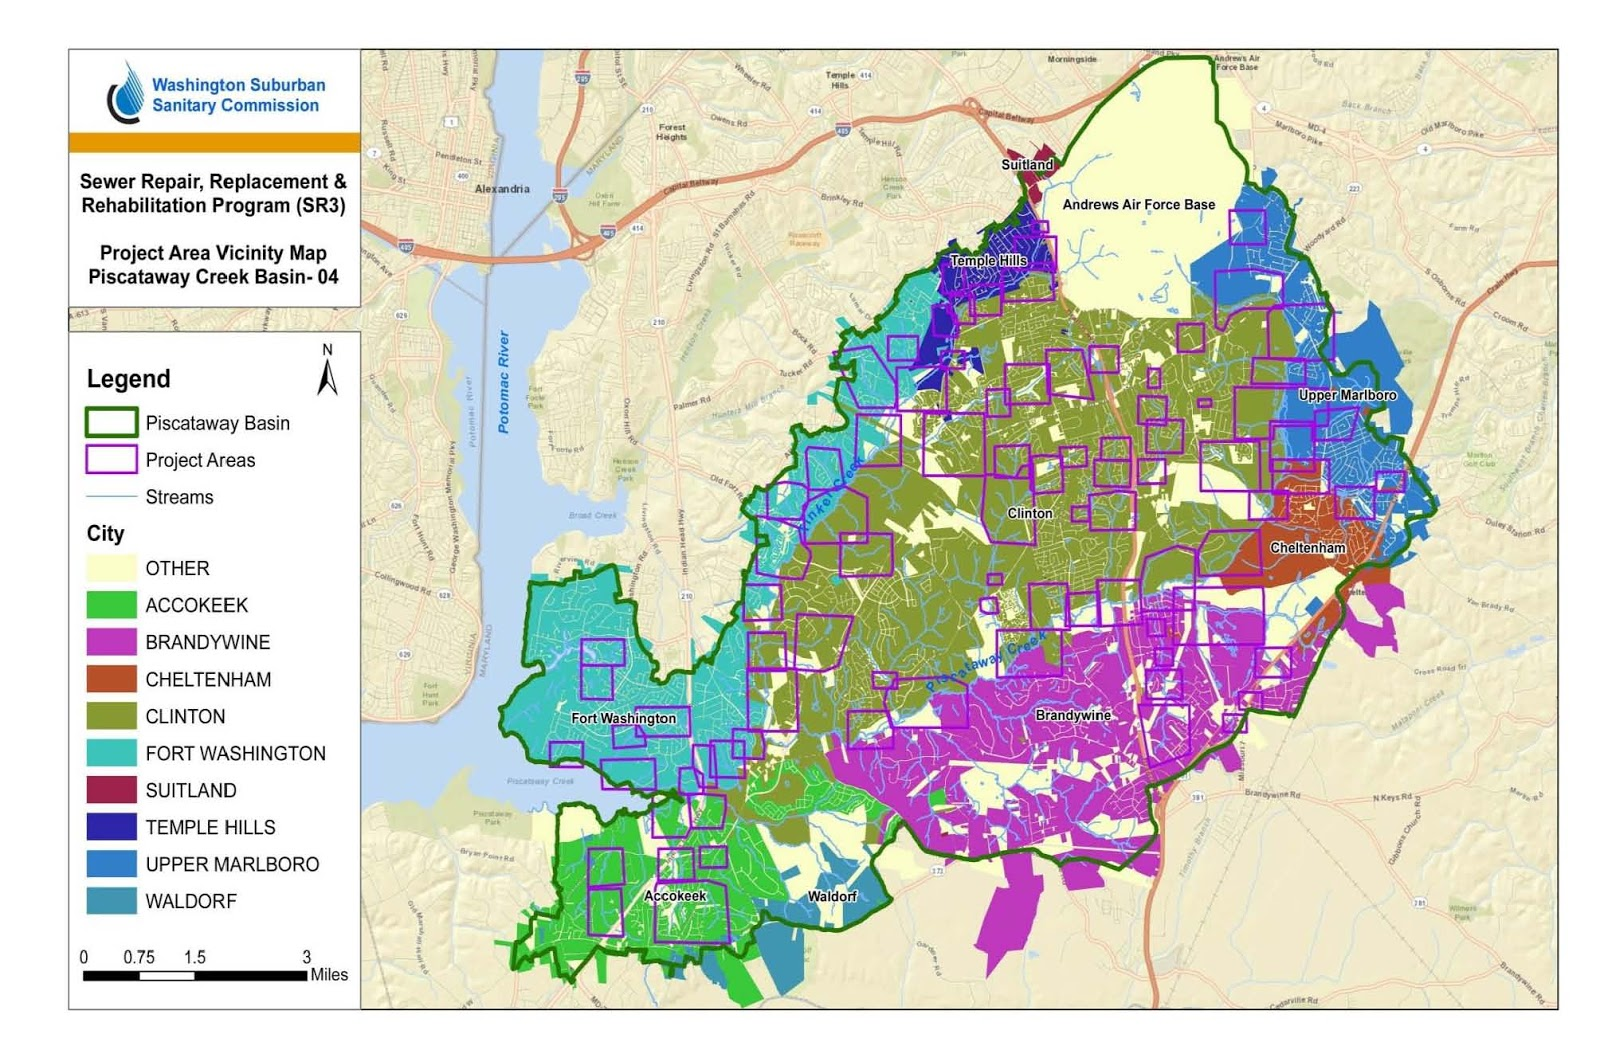 sewer repair replacement and rehabilitation sr3 construction map